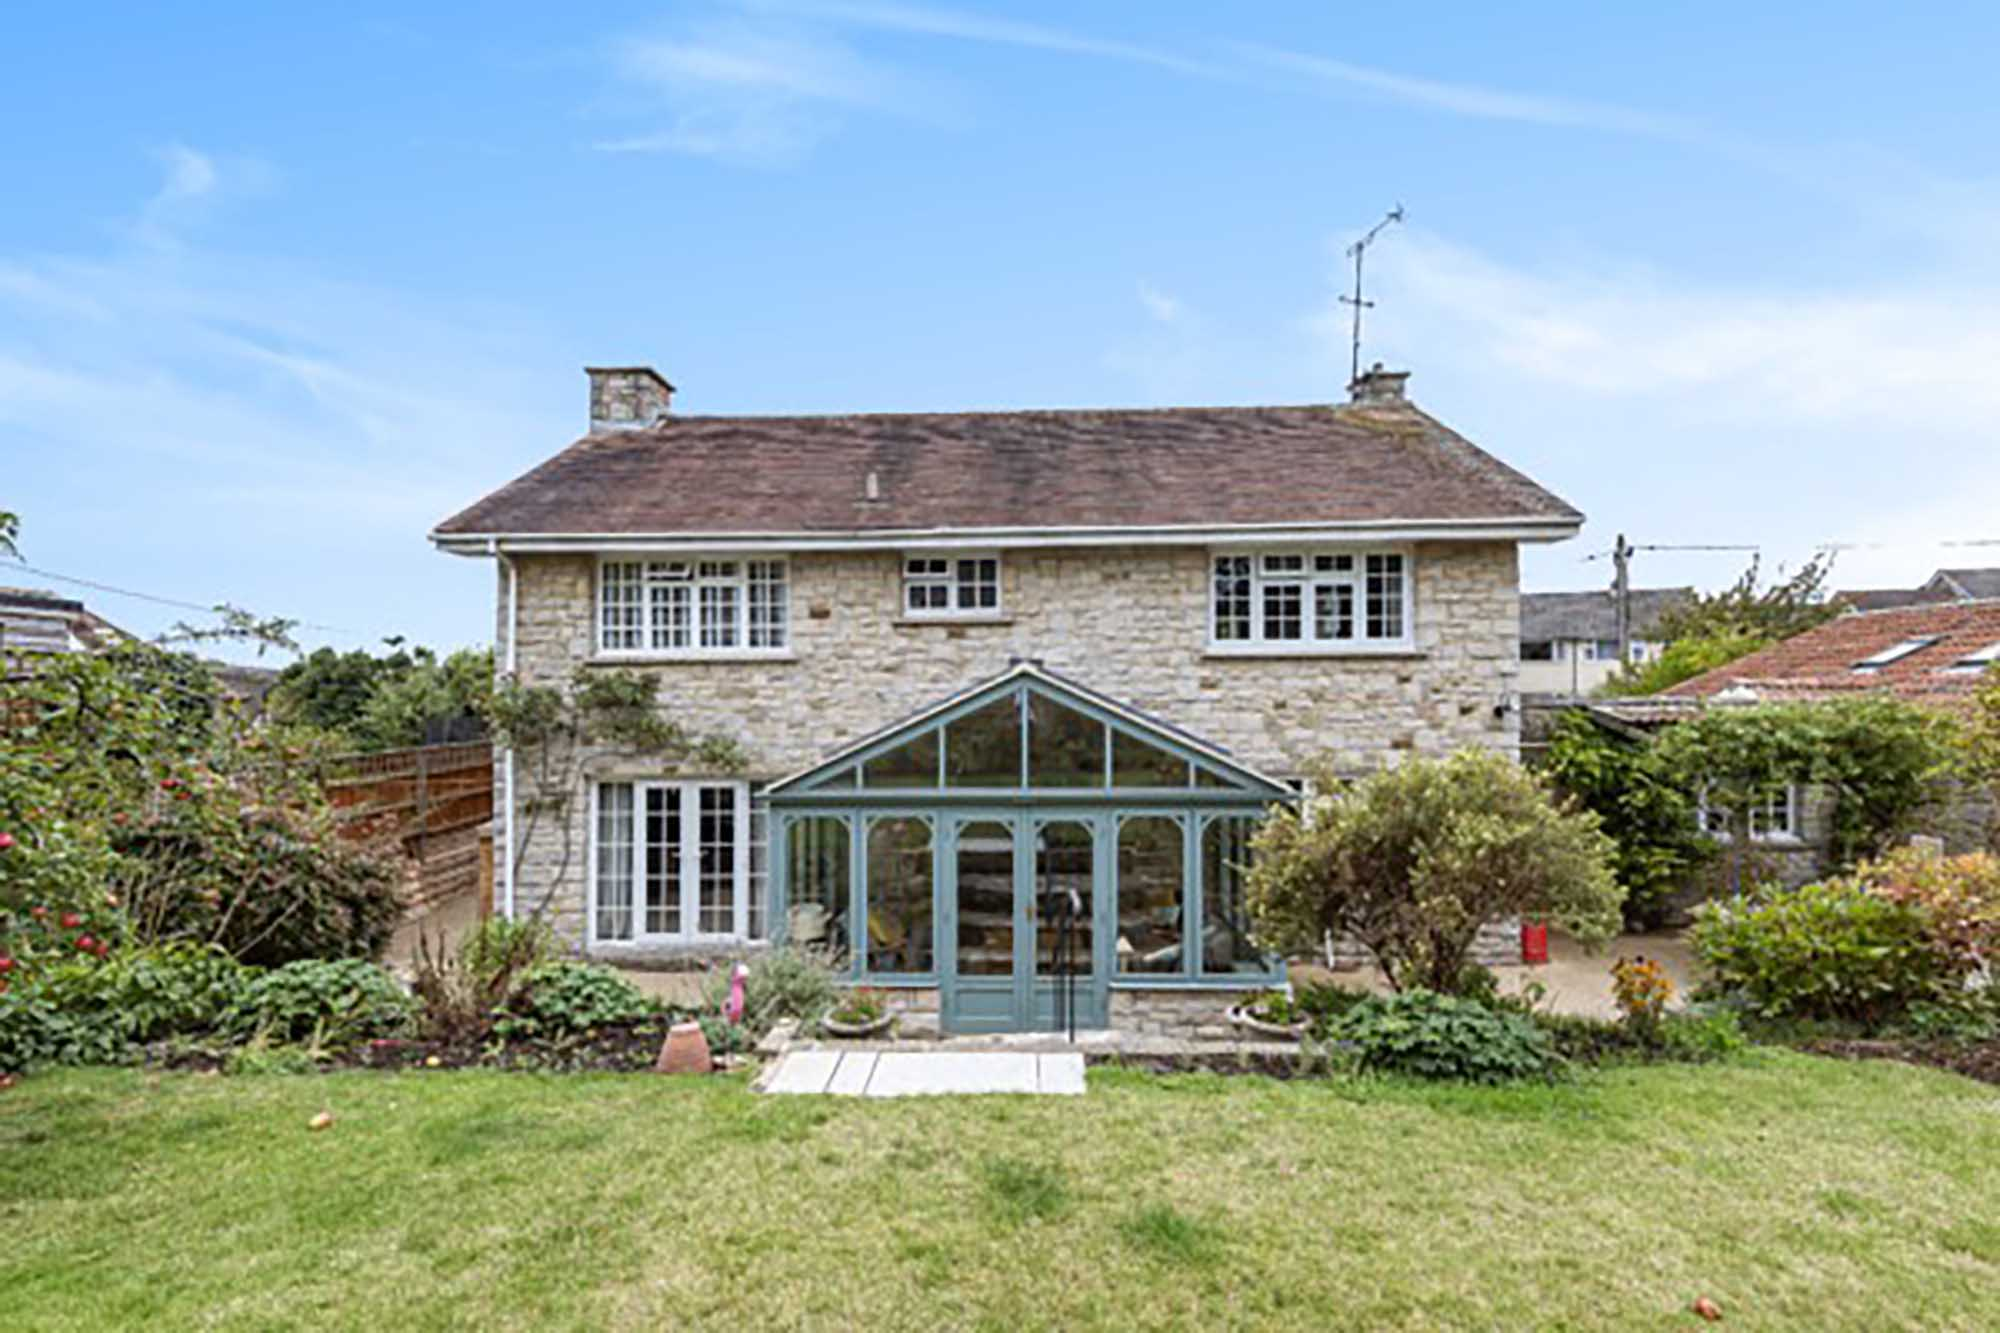 Nr Sherborne, 4 Bedroom family house with annex